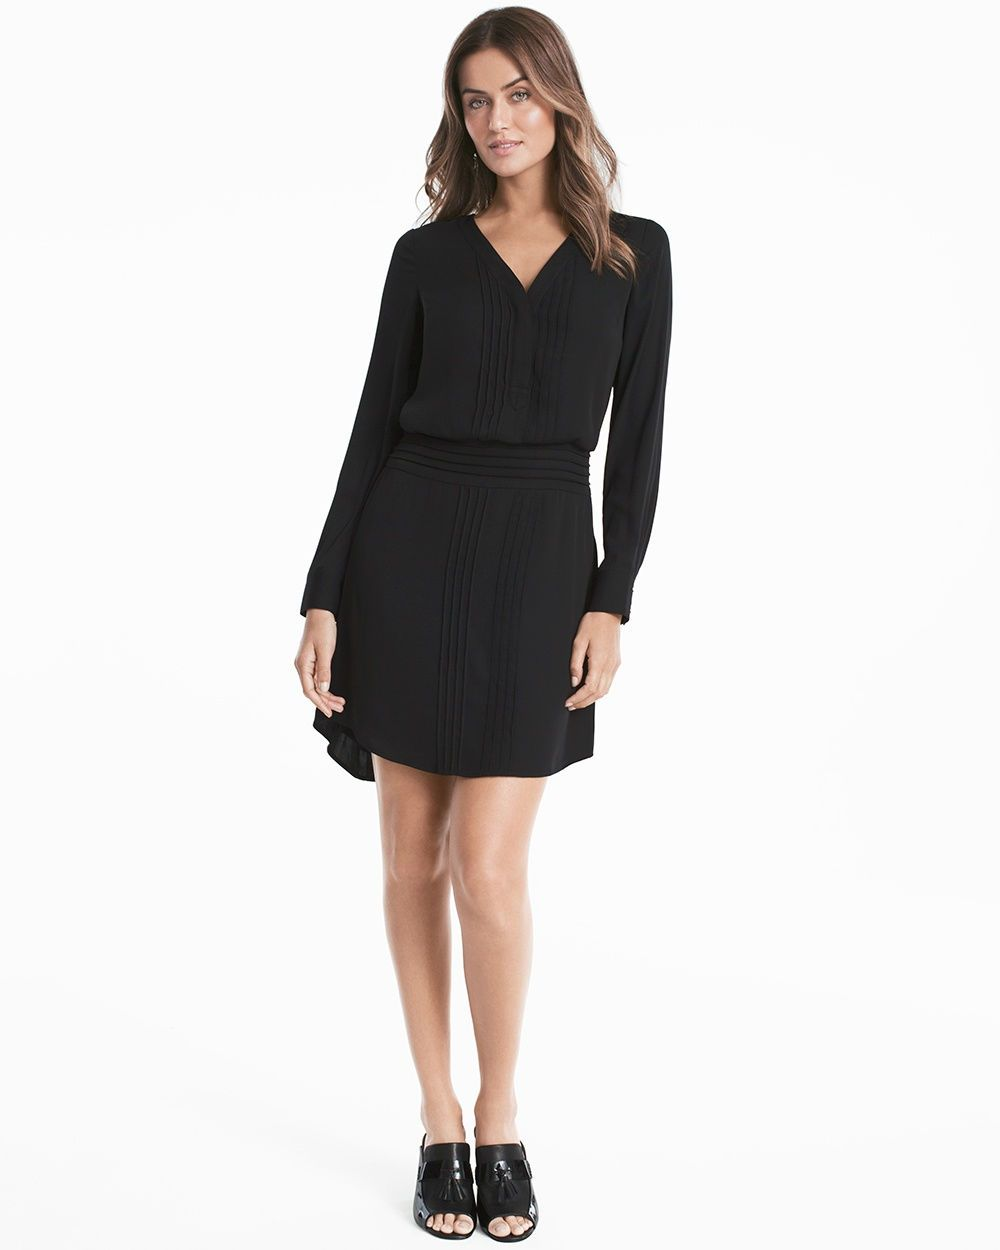 fdd7ffb01d2 You can t go wrong with this little black dress—a sleek tunic with ...